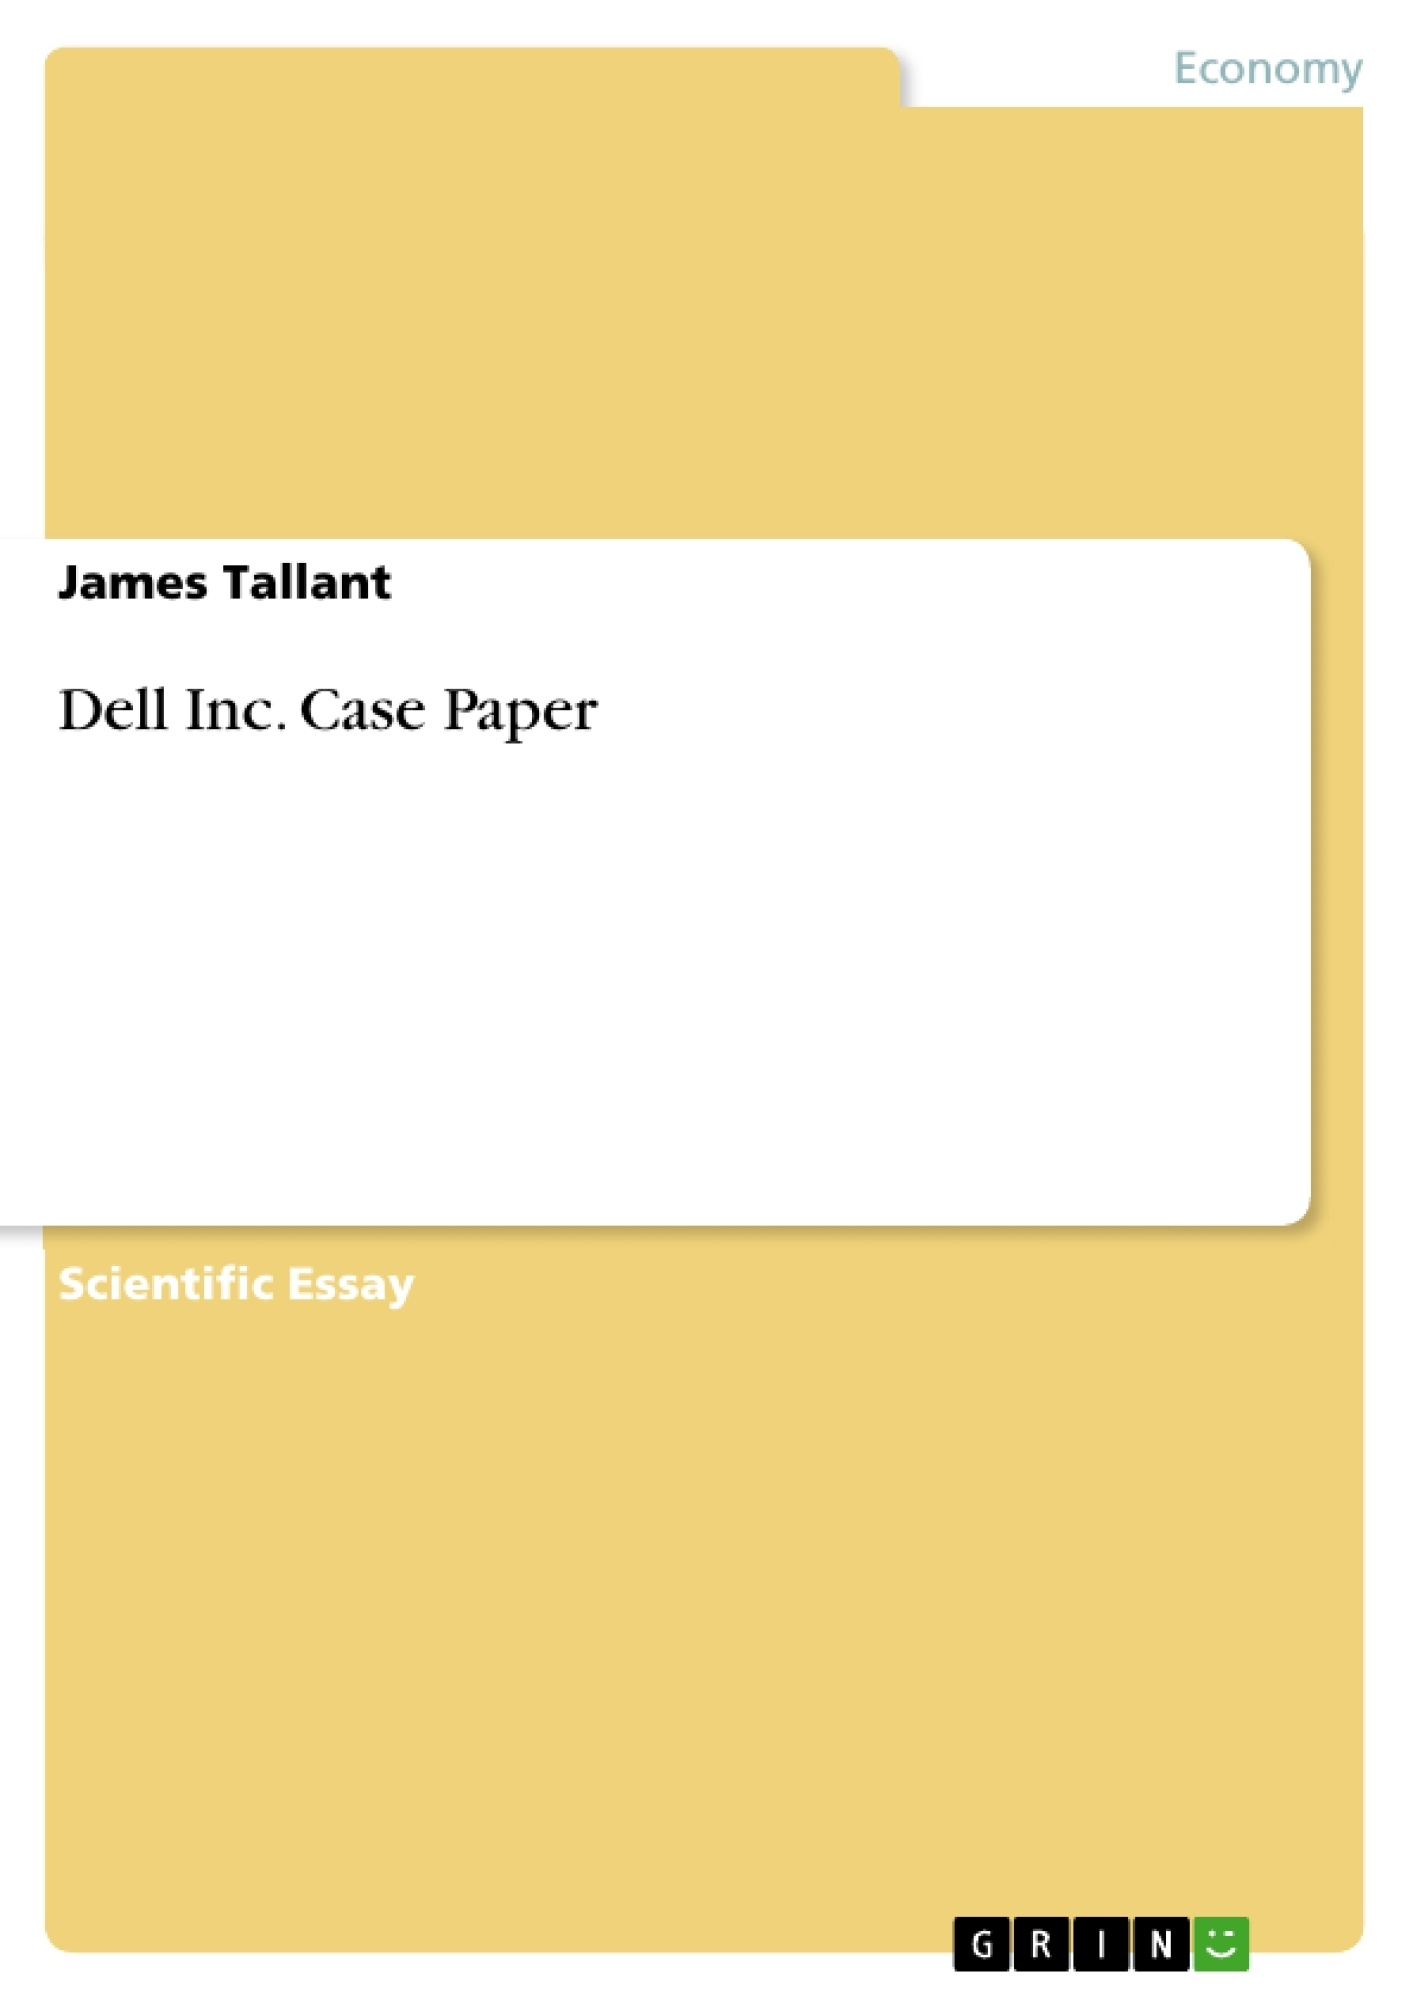 pdf term paper Term paper pdf we guarantee that our papers are plagiarism-free each order is handcrafted thoroughly in accordance to your personal preferences and unique requirements.